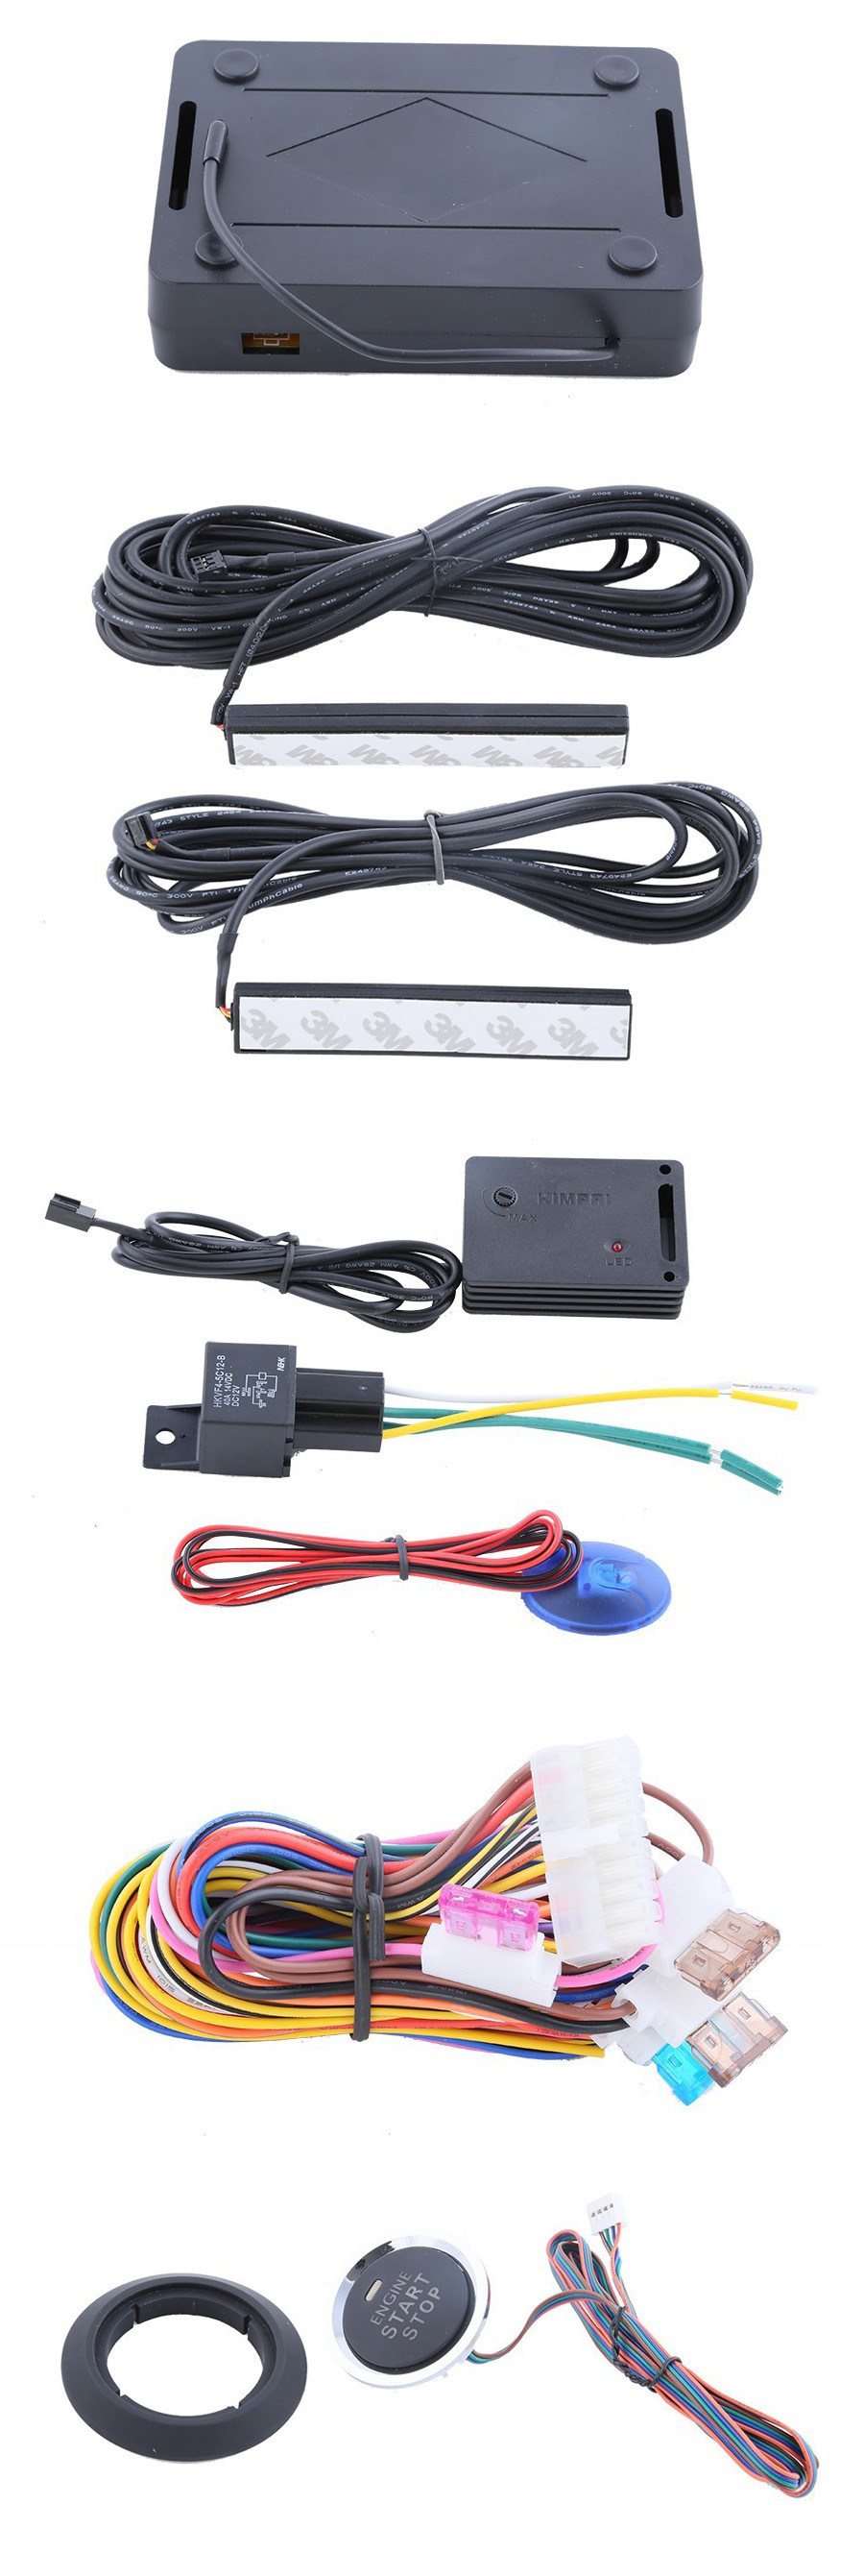 PKE Car Alarm System Remote Lock Unlock The Cars, Passive Keyless Entry, Remote Trunk Release With Shipping Free